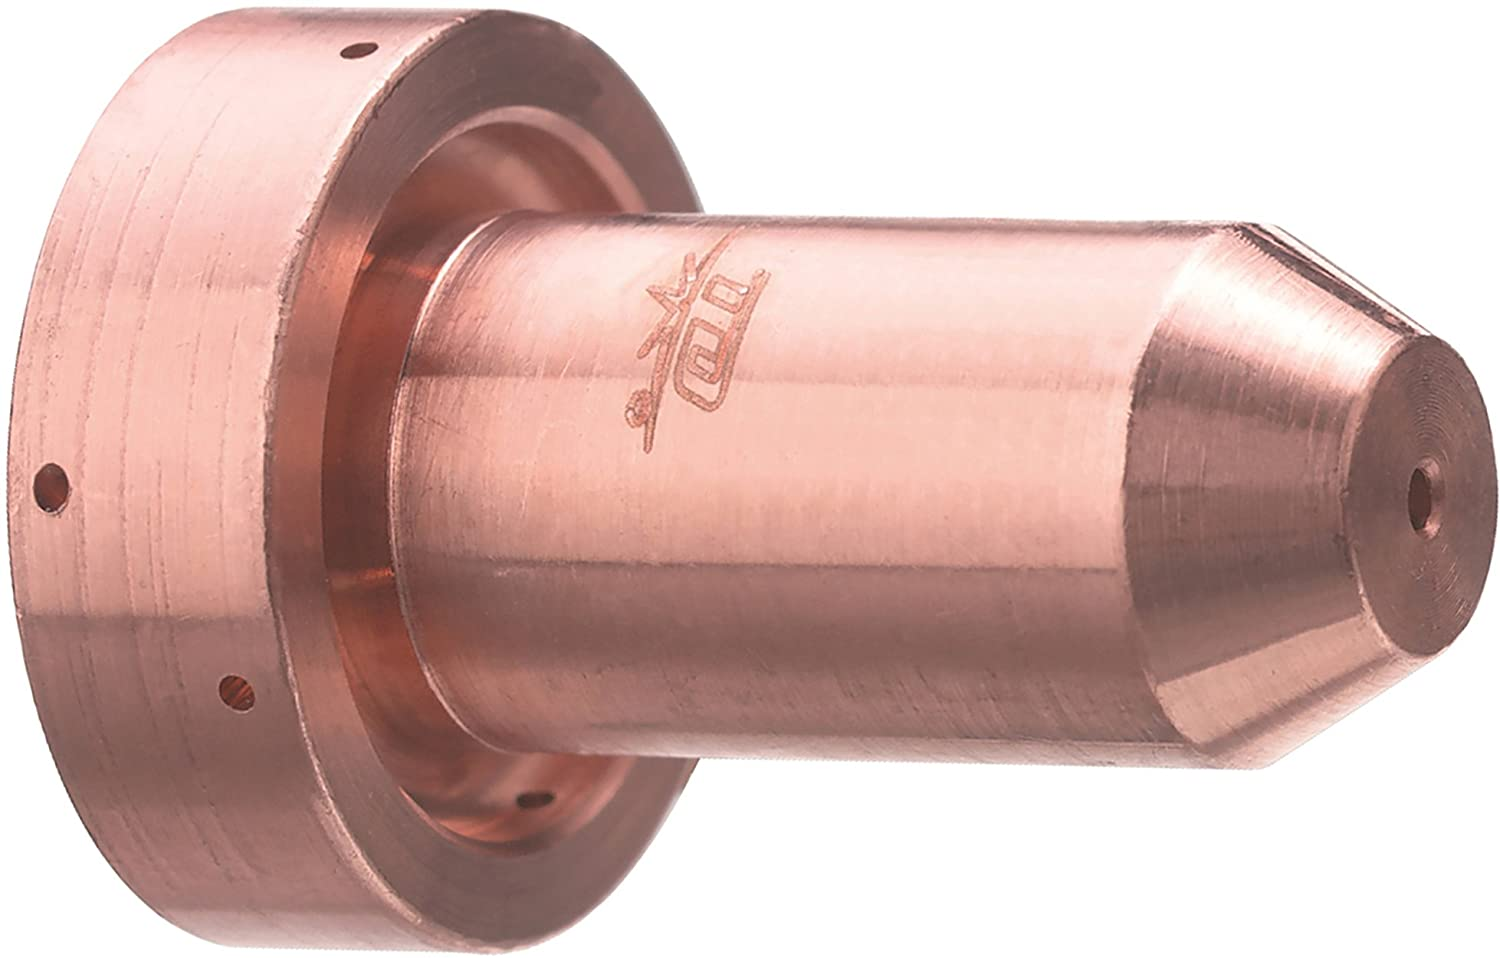 Thermal Dynamics 9-8206 Tip 30A Max Very popular! 60% OFF Drag